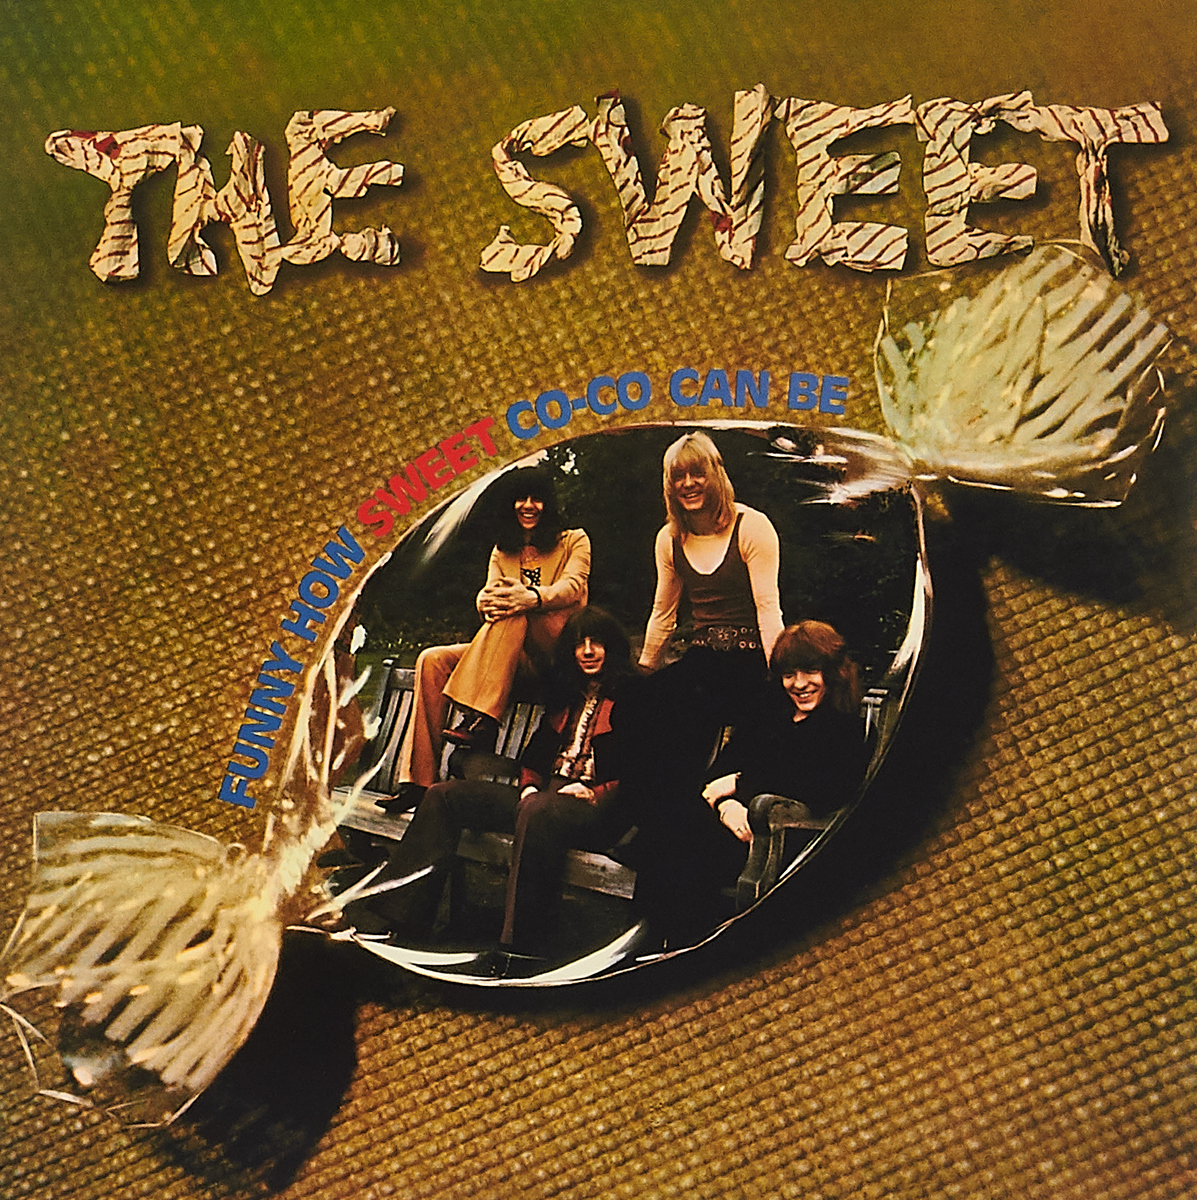 Sweet The Sweet. Funny, How Sweet Co Co Can Be (New Vinyl Edition) (LP) the sweet münchen